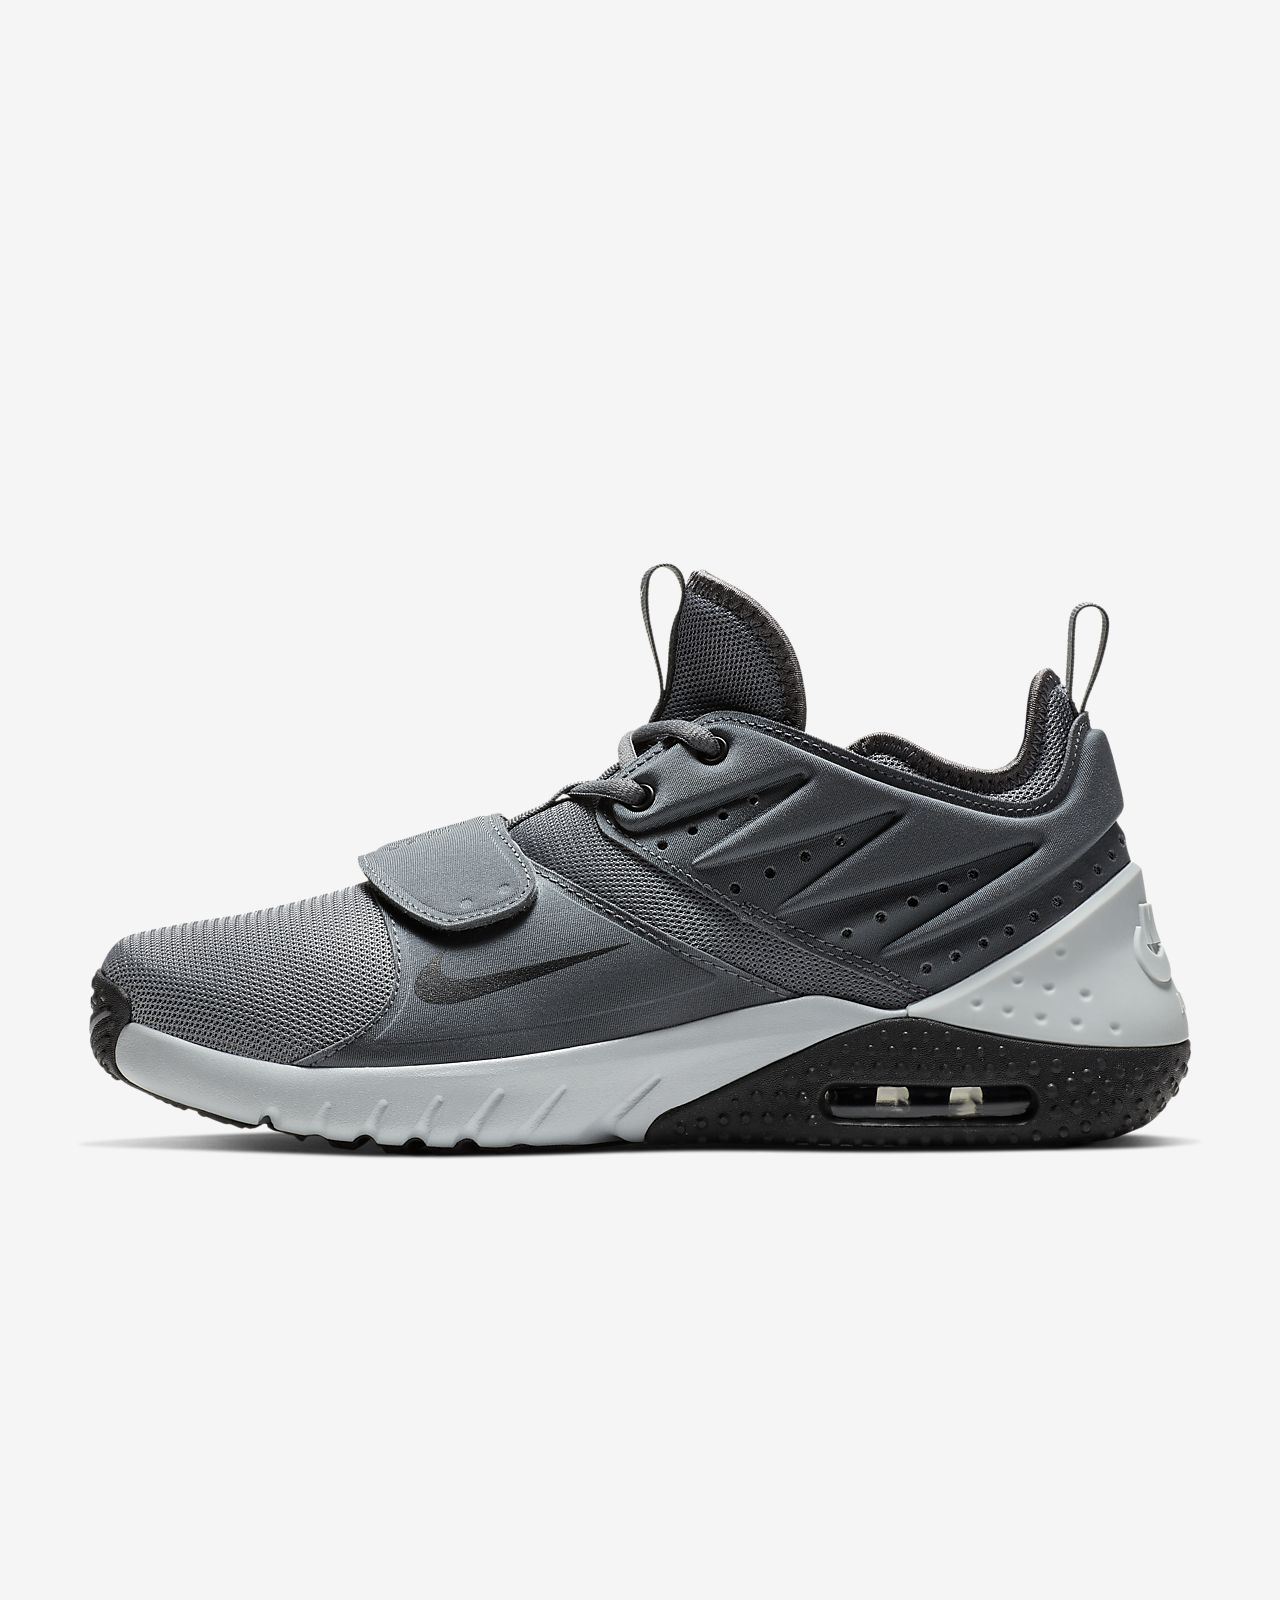 official photos d9806 6688a Men s Gym Training Workout Shoe. Nike Air Max Trainer 1